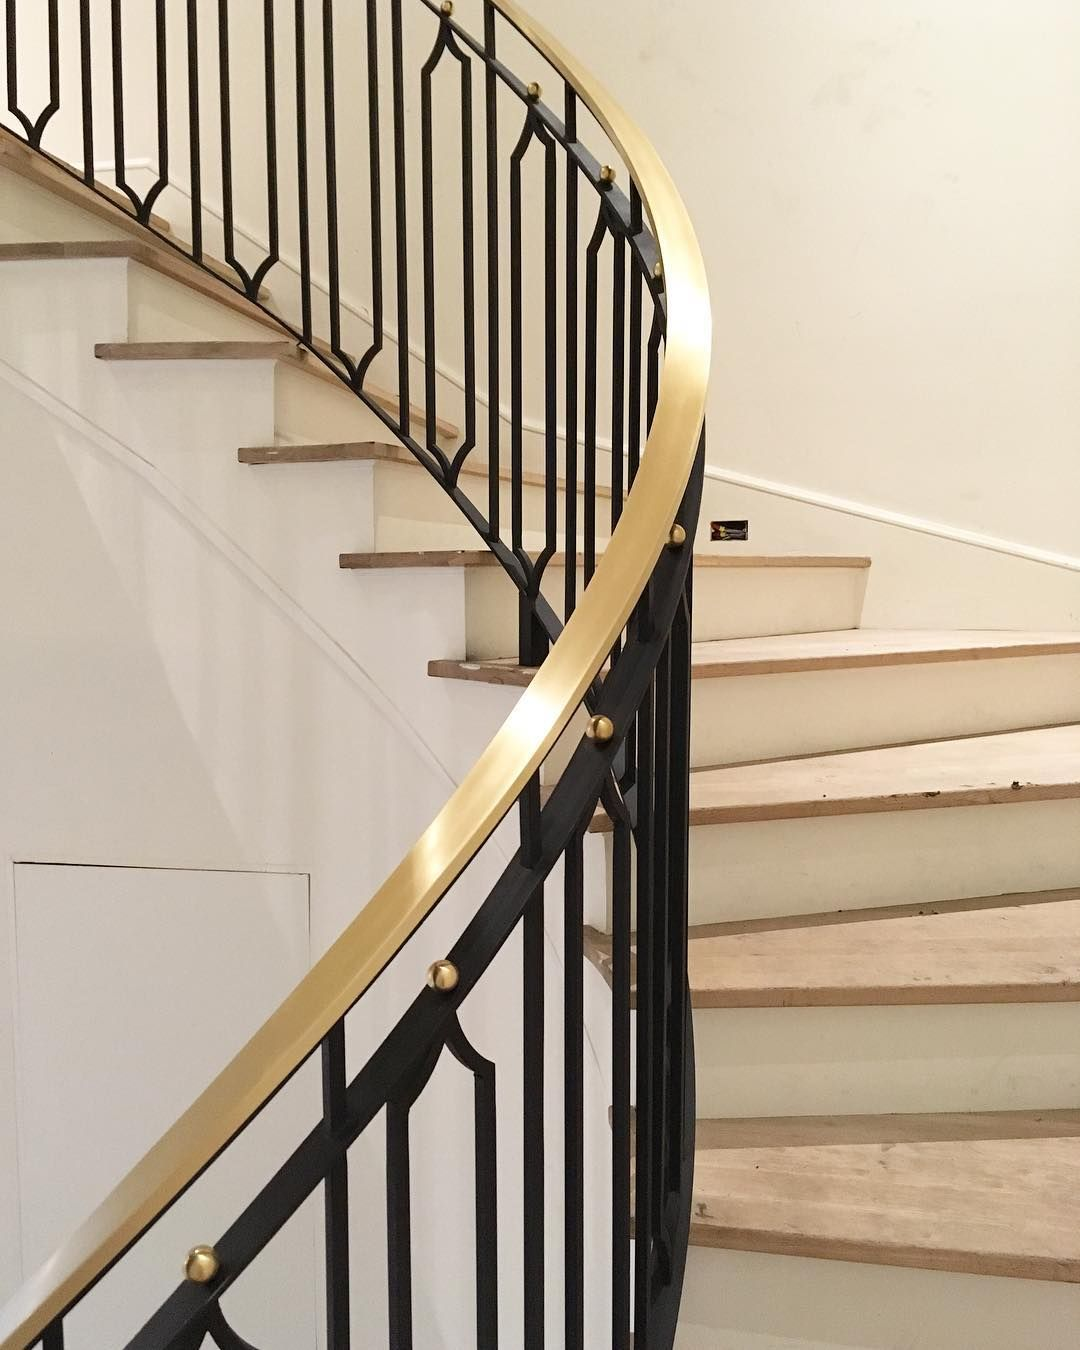 Superieur Design By Jenkins Interiors | Curved Brass And Iron Handrail | Custom  Design By Jerkin Interiors